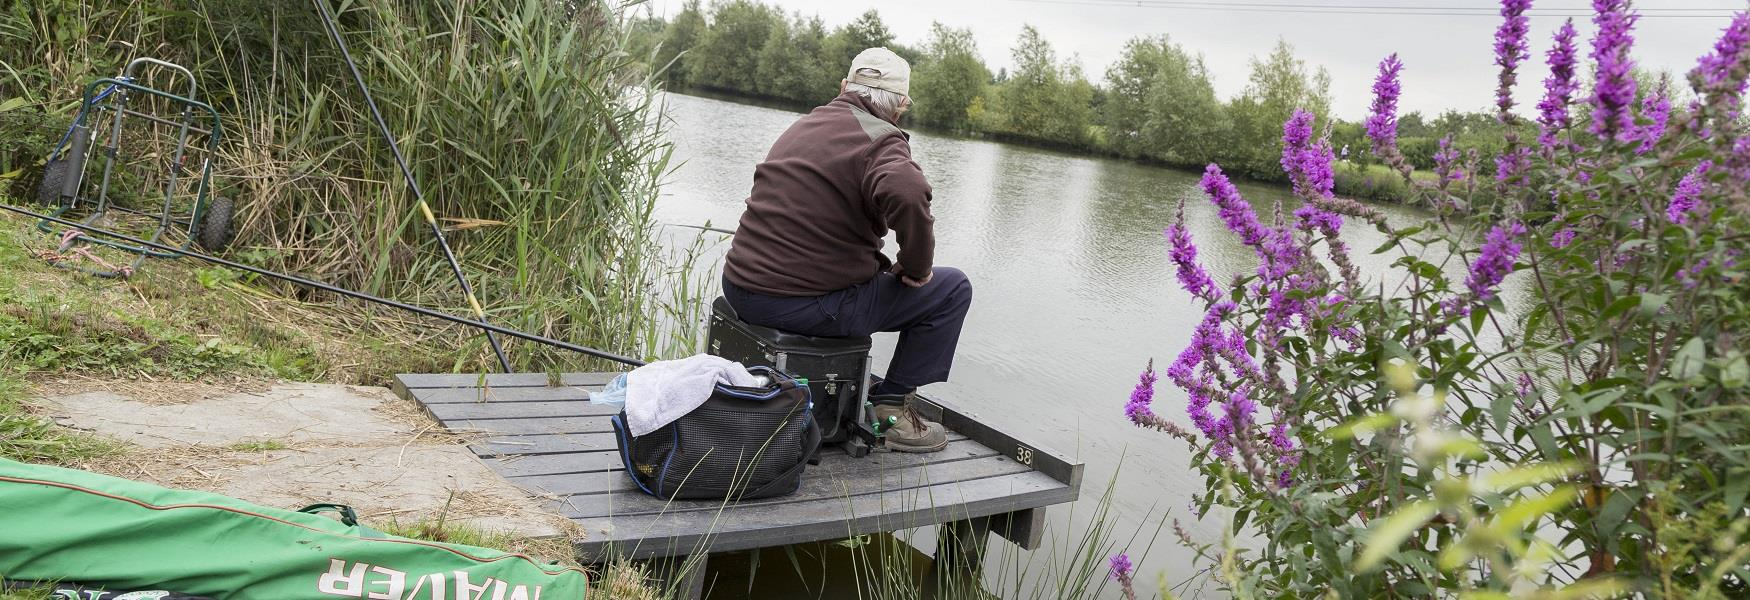 Fishing at Poolsbrook Country Park